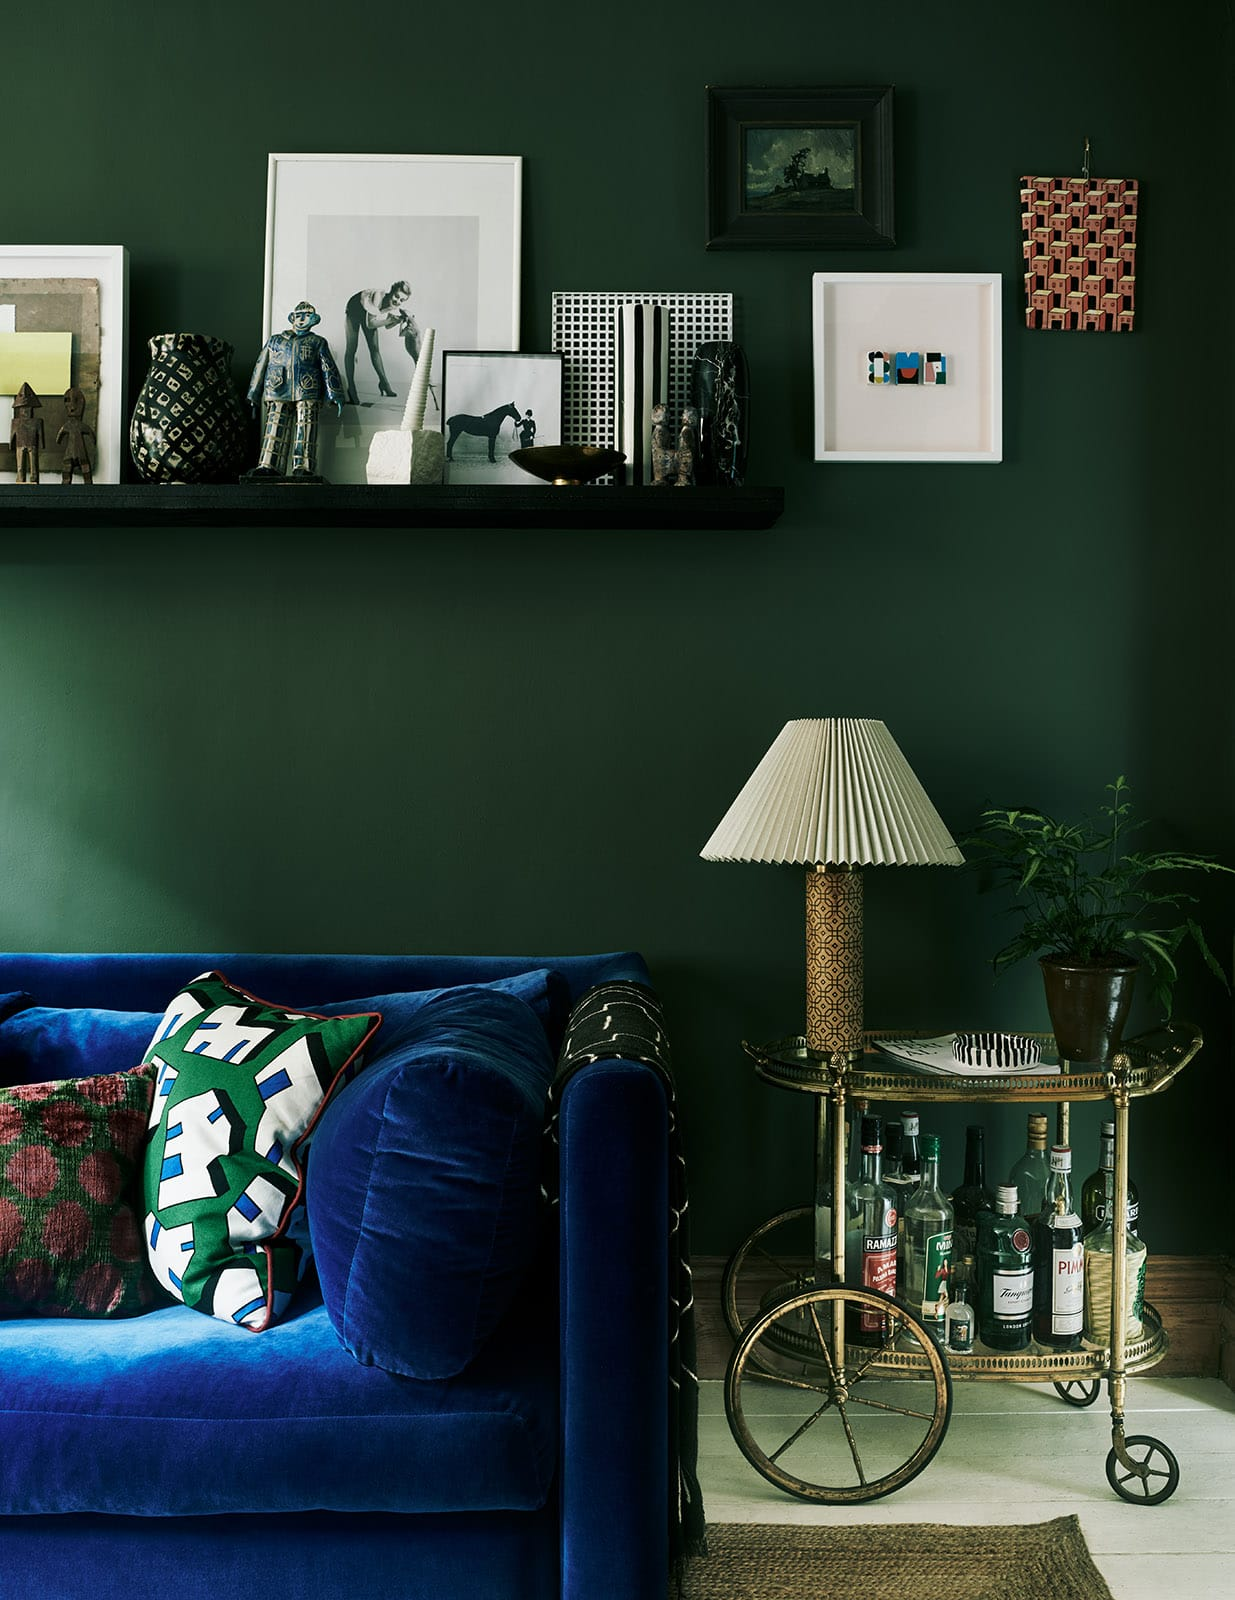 Jewel tone interior design Laura Fulmine, blue couch, emerald walls, bar cart.